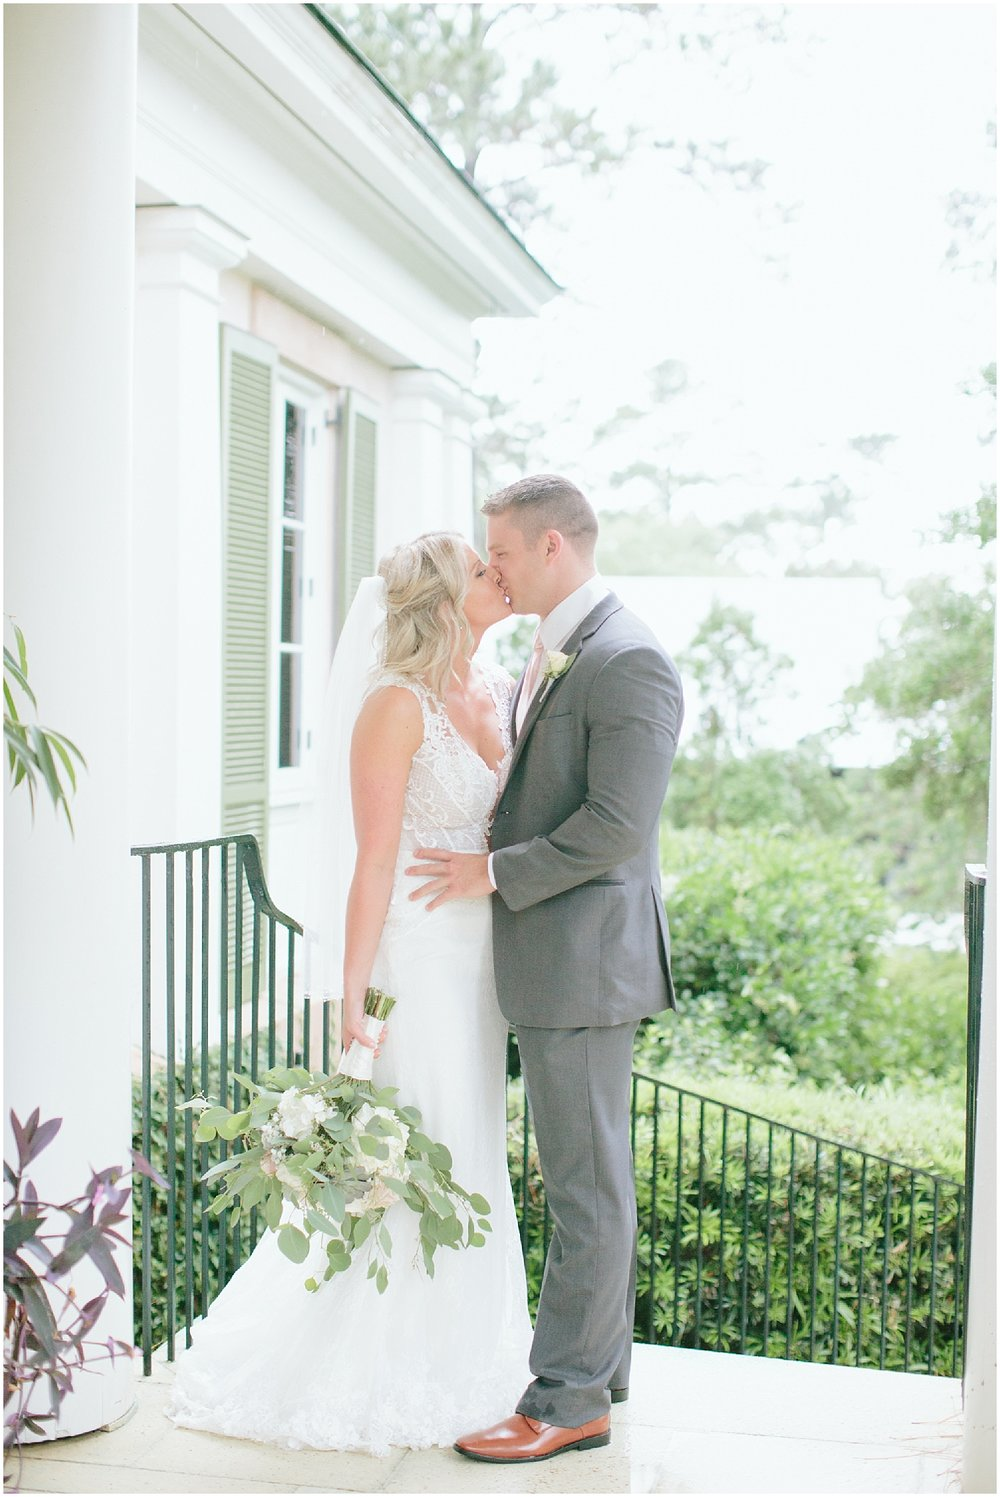 Paige_Molina_Wedding_Photographer_Fine_Art_Photography_Traditional_Inspiration_Elegant_Classic_Bride_Atlanta_Wedding__0036.jpg